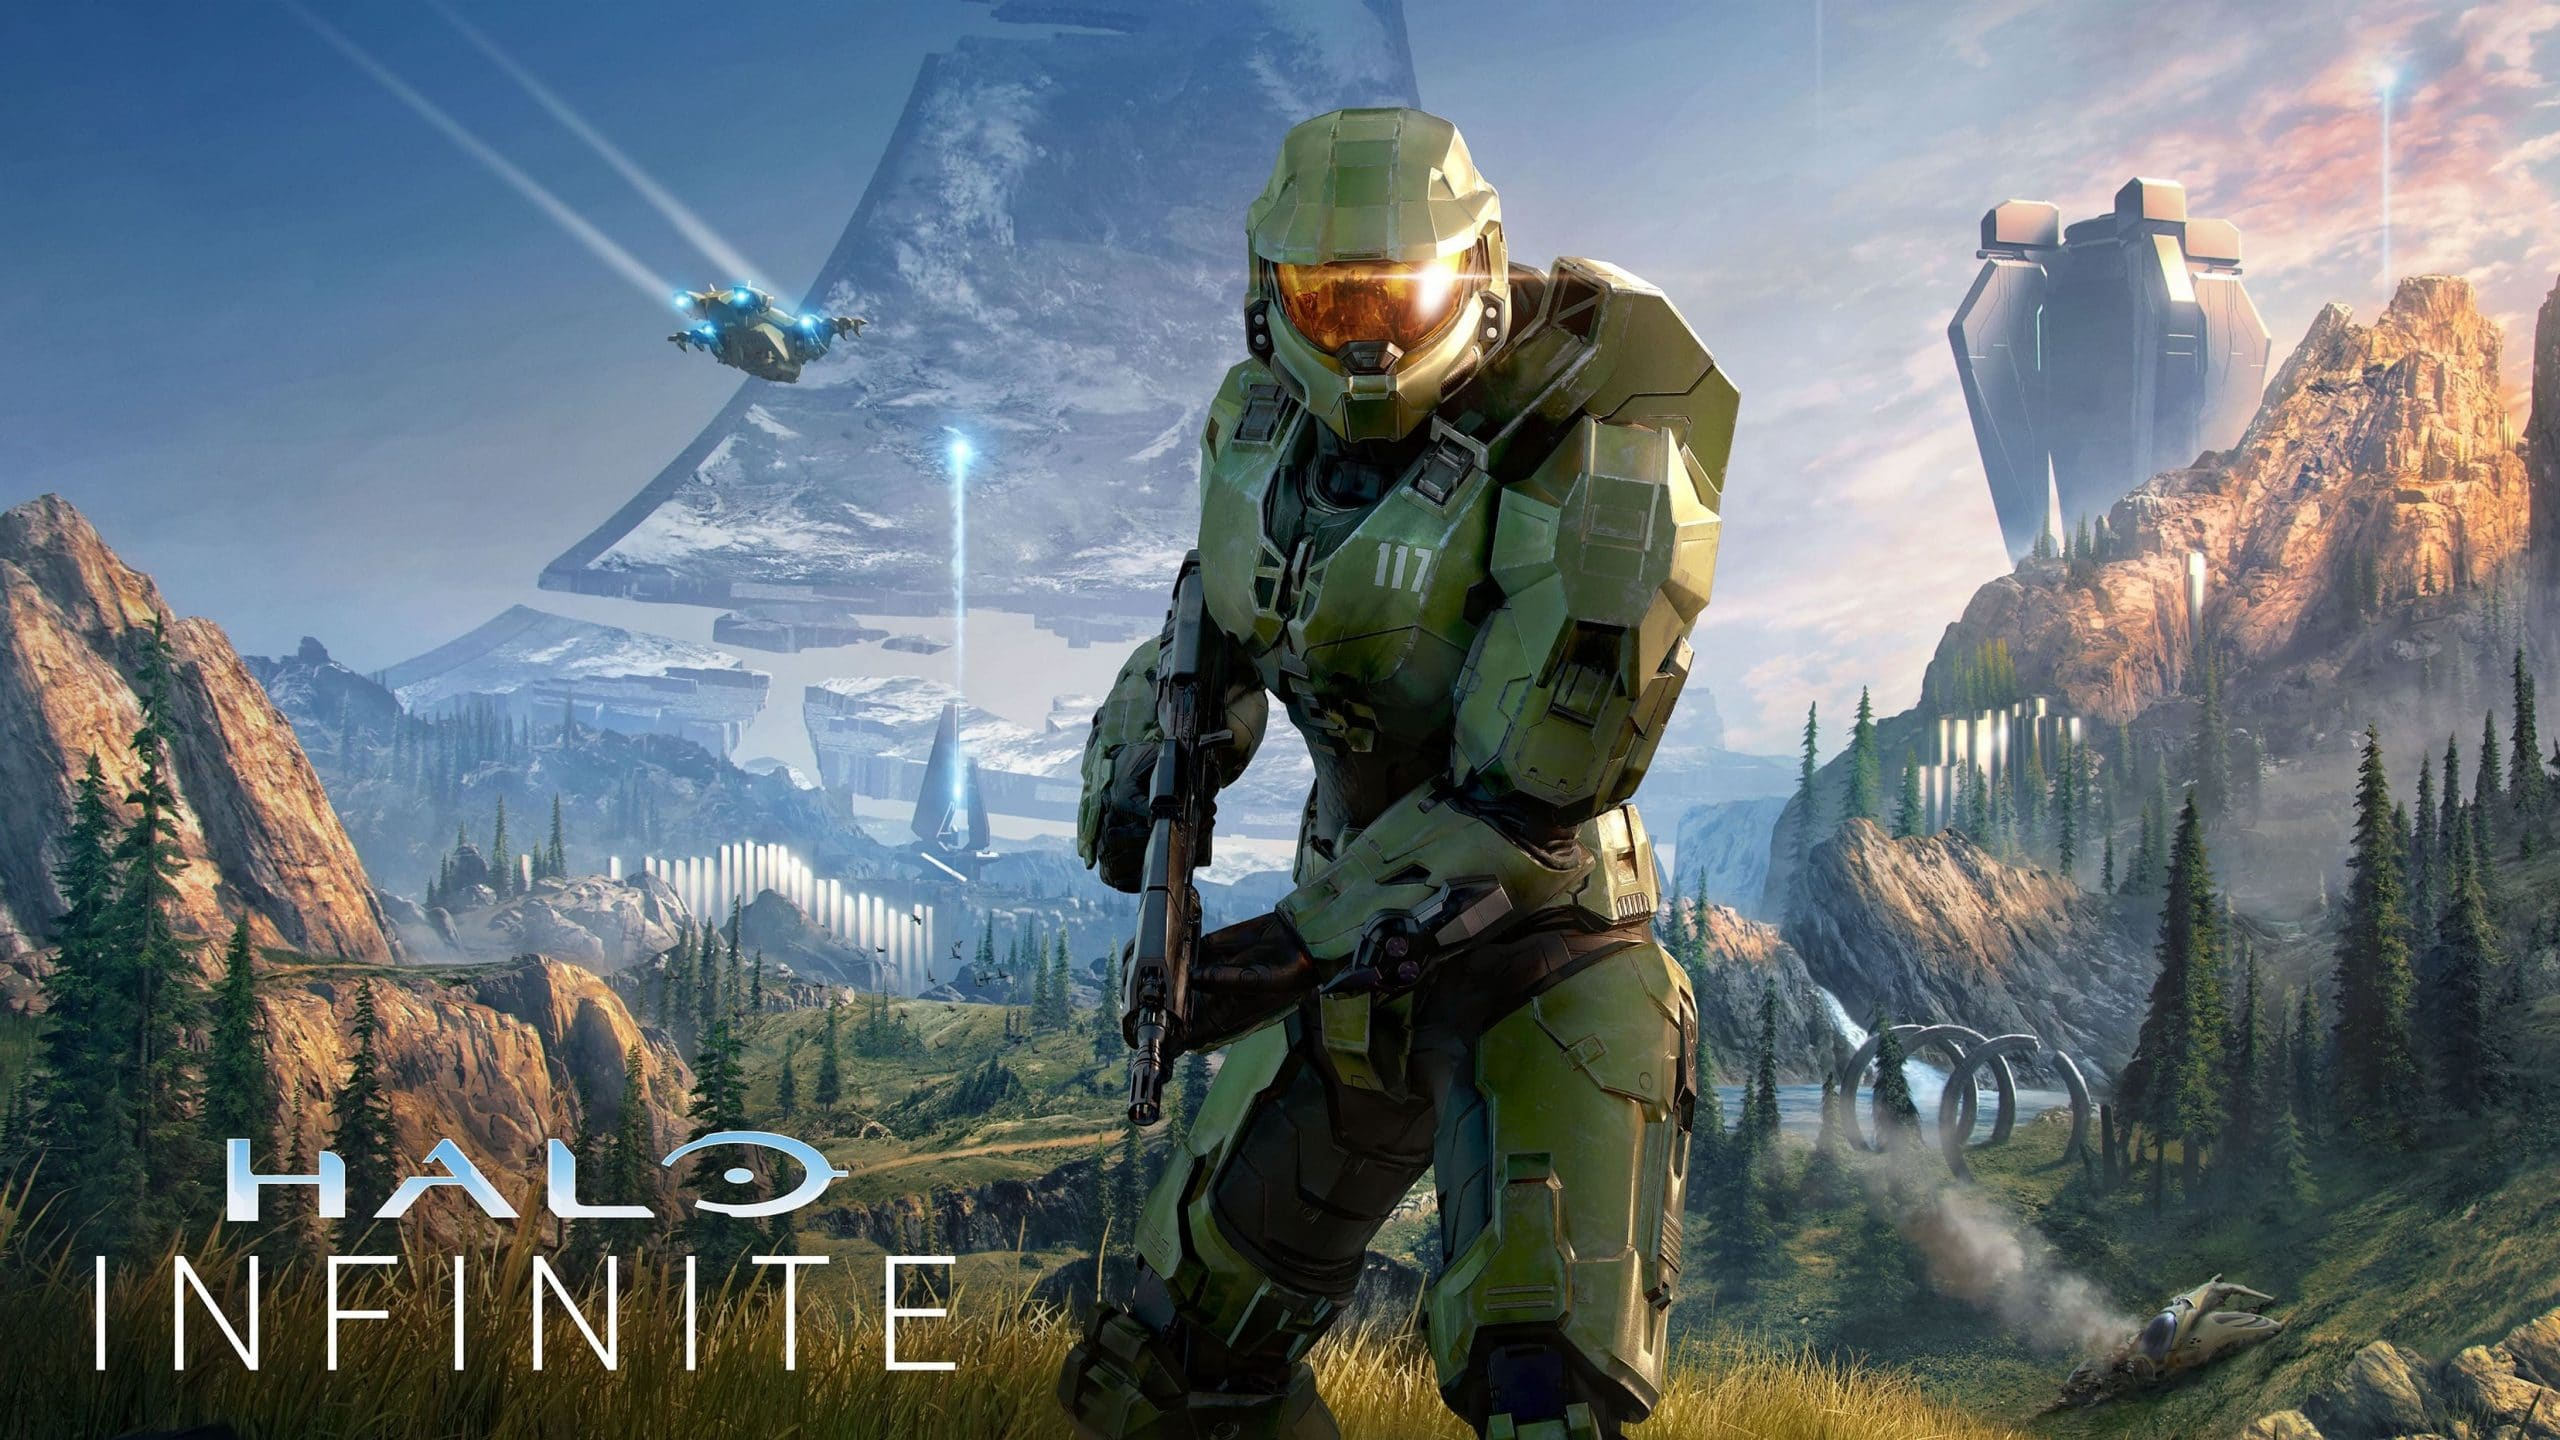 Halo Infinite May See Spring 2021 Release